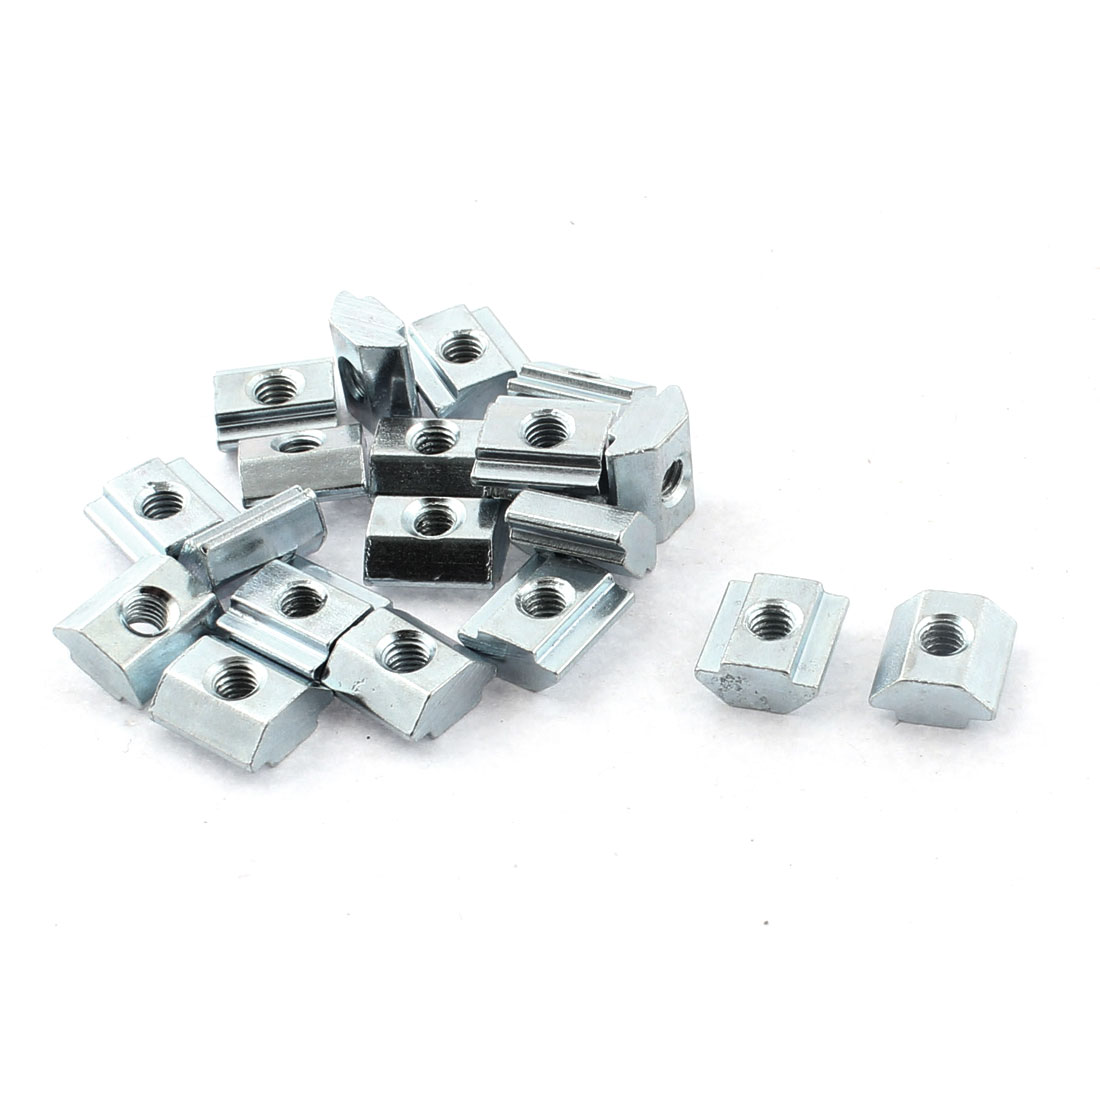 M4 Female Thread 20 Series Slide in Metal T-slot Nut Silver Tone 20pcs